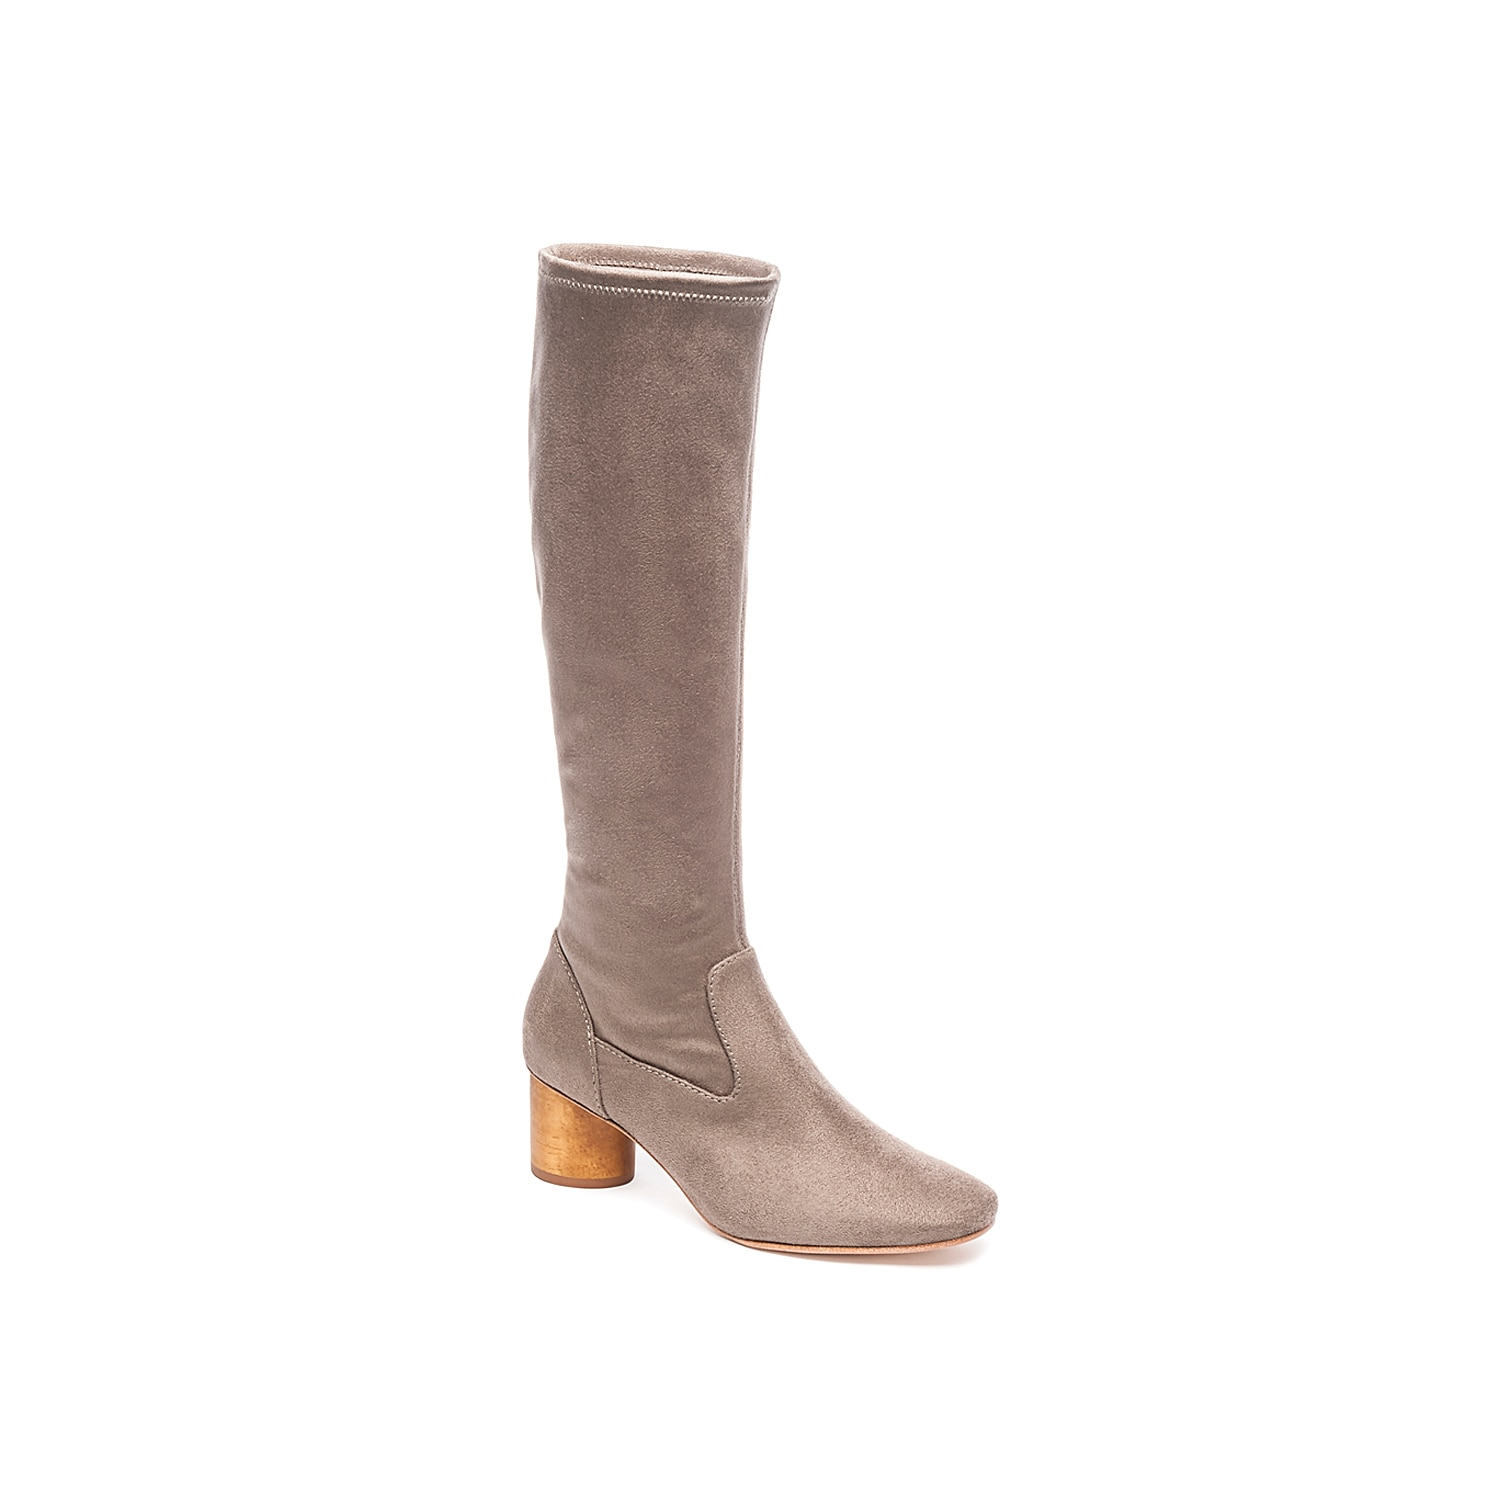 Bring plenty of sophisticated to jeans, cardigans, or sweater dresses with the Dea boot from Bernardo. These tall boots feature a soft suede upper and cylindrical wooden block heel for an added pop! Click here for Boot Measuring Guide.